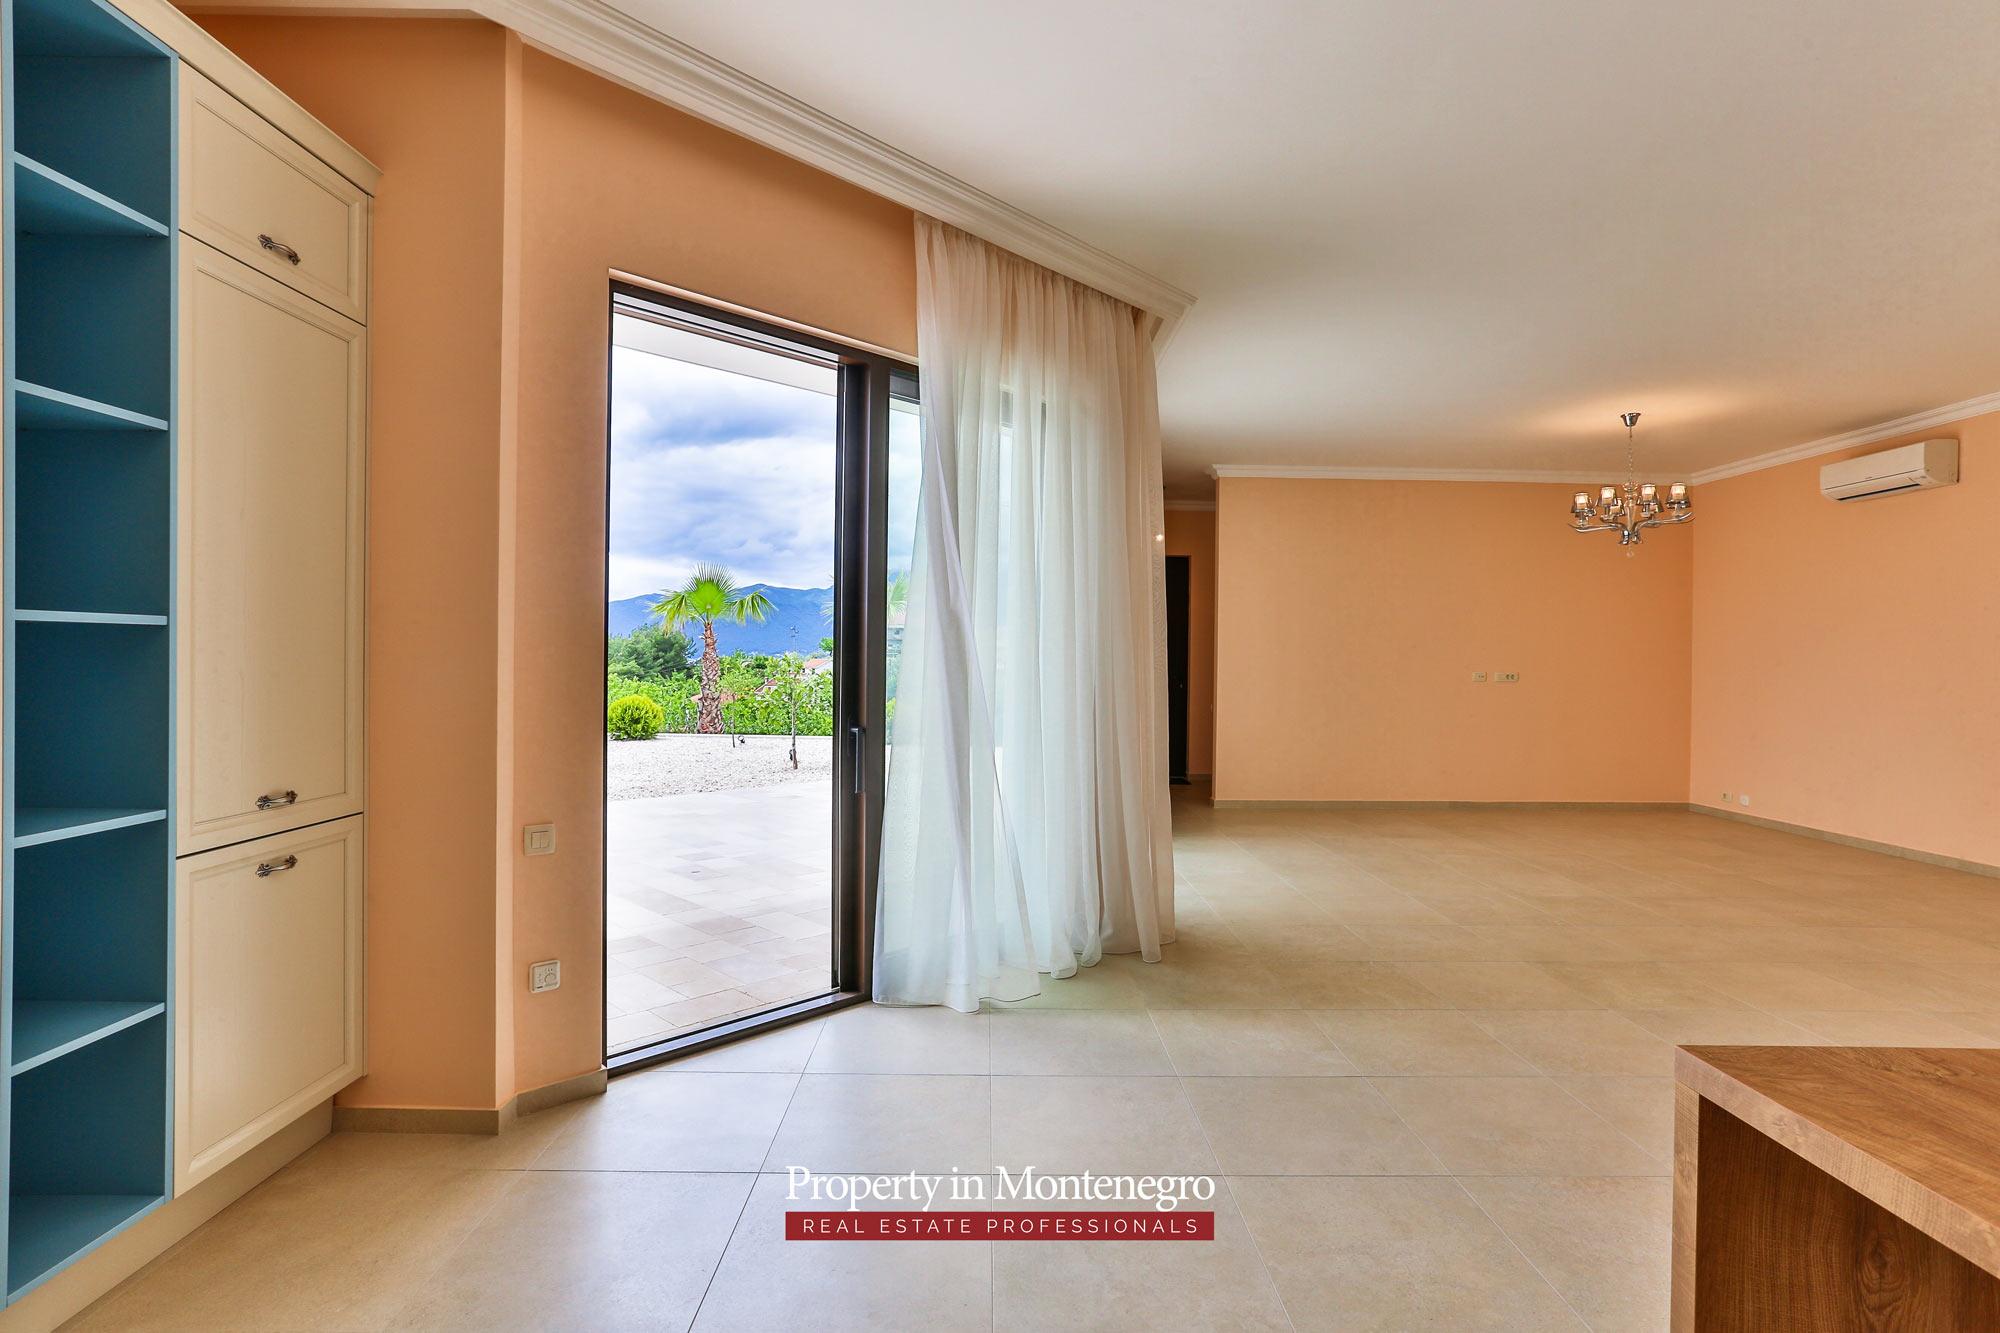 Luxury-villa-with-swimming-pool-for-sale-in-Tivat (5).jpg